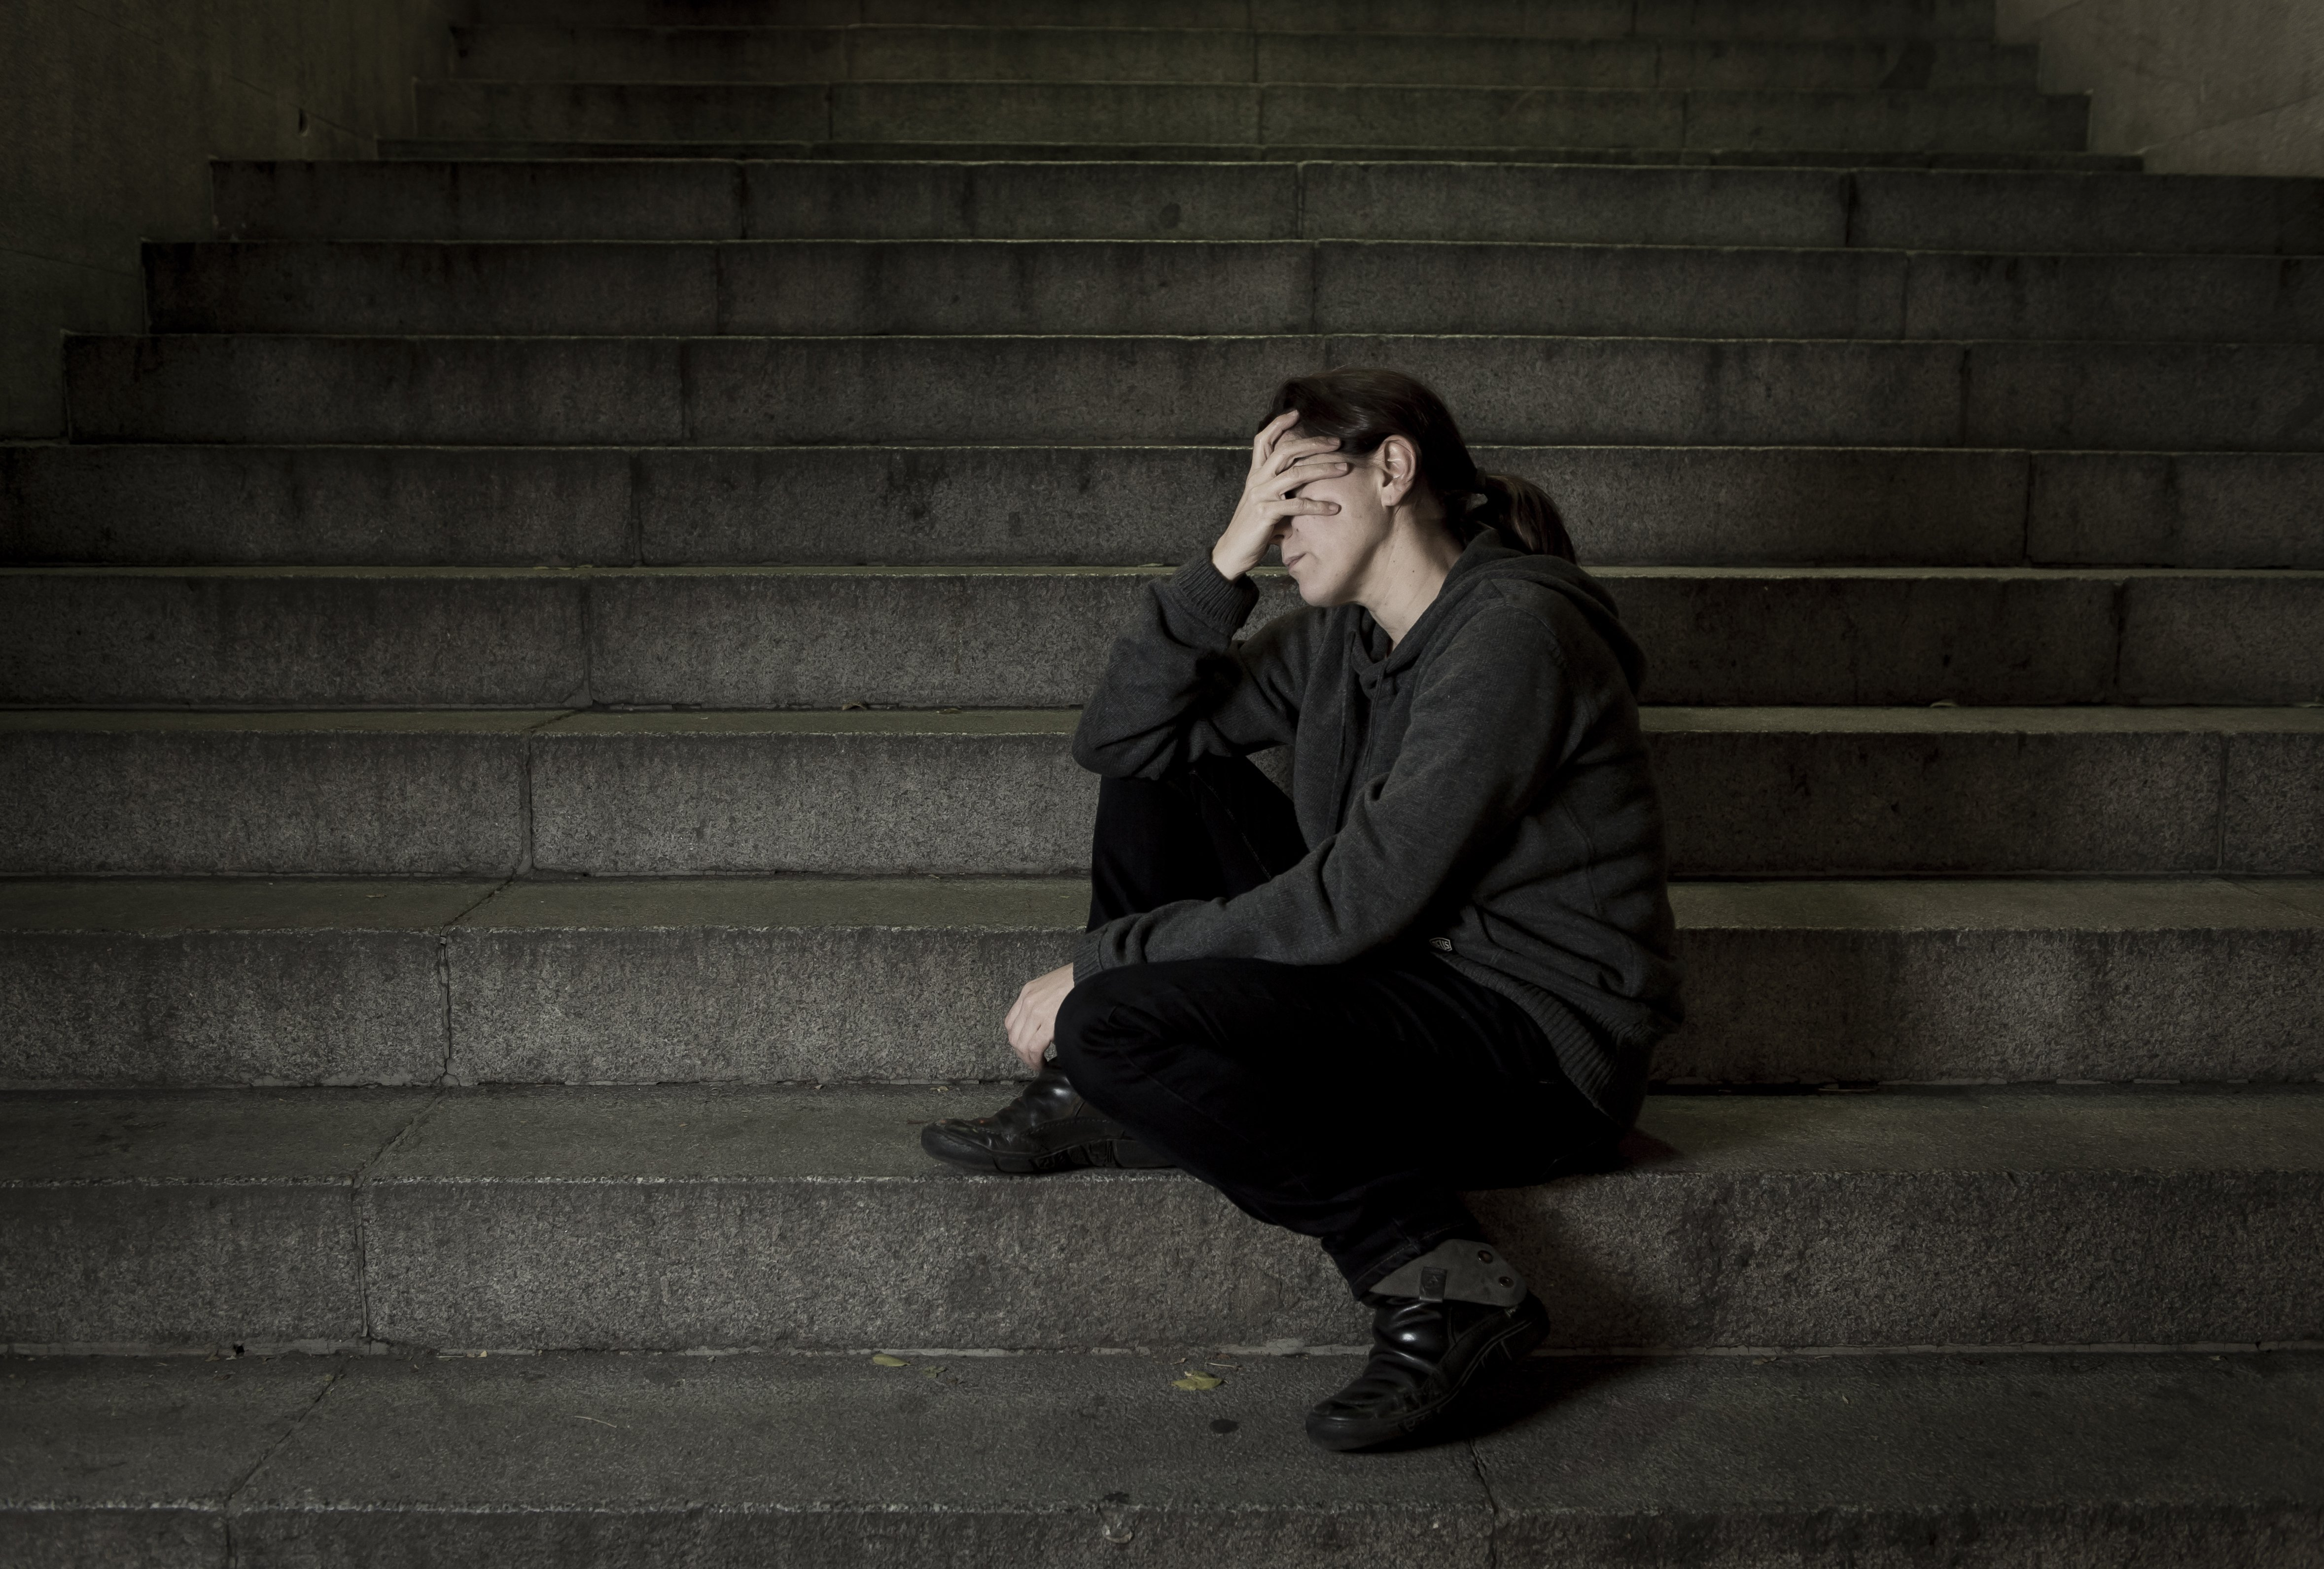 Sad woman alone on street staircase. | Photo: Shutterstock